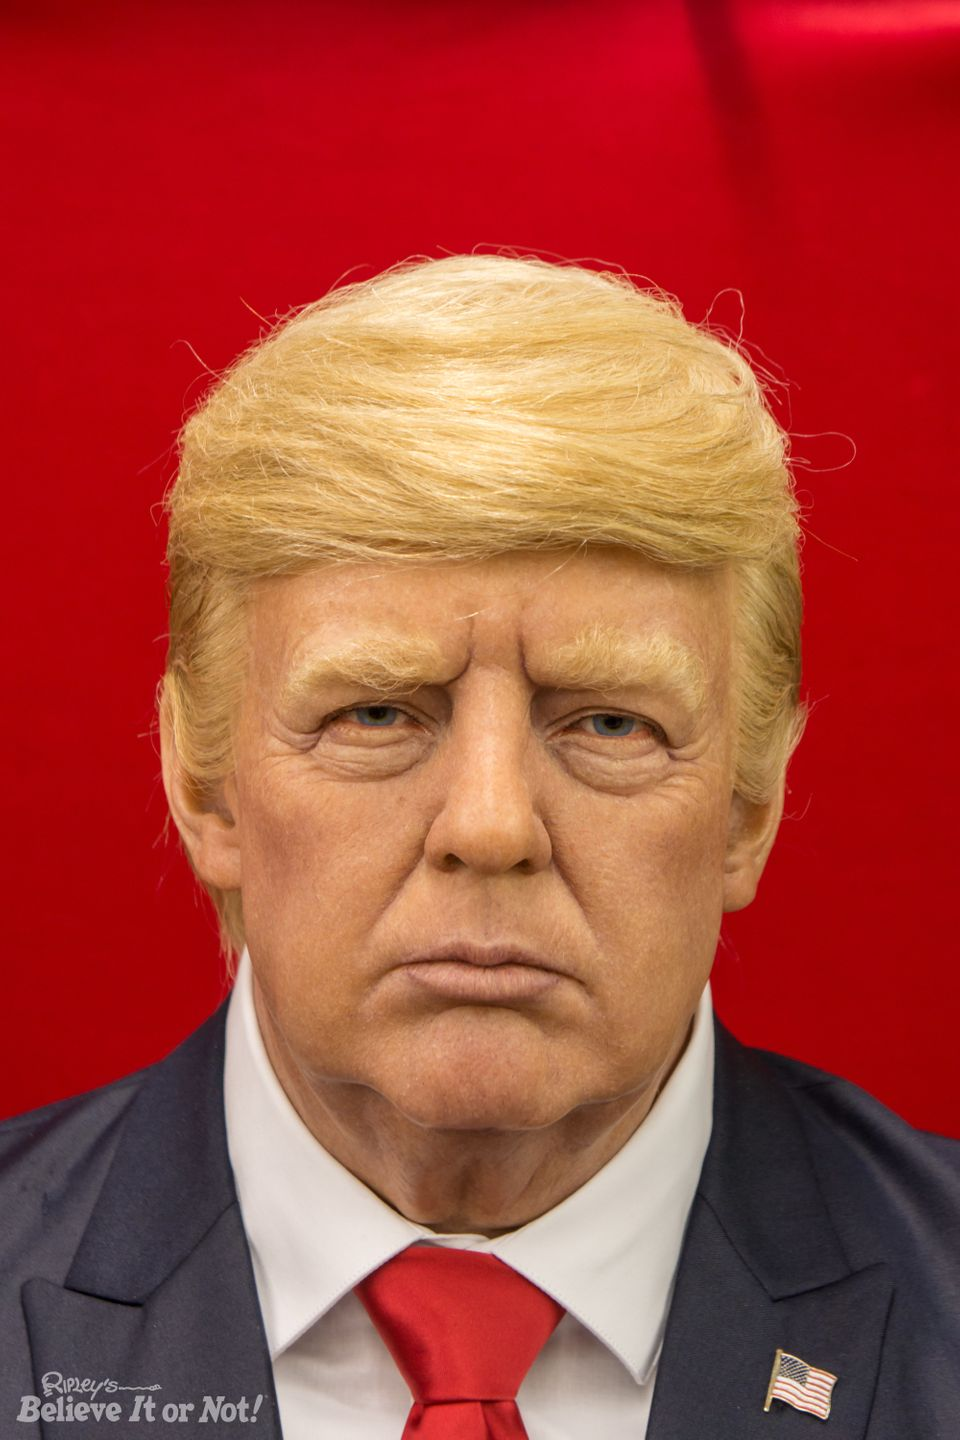 Ripley's has created threewax figures -- or dummies -- of President-elect Donald Trump.